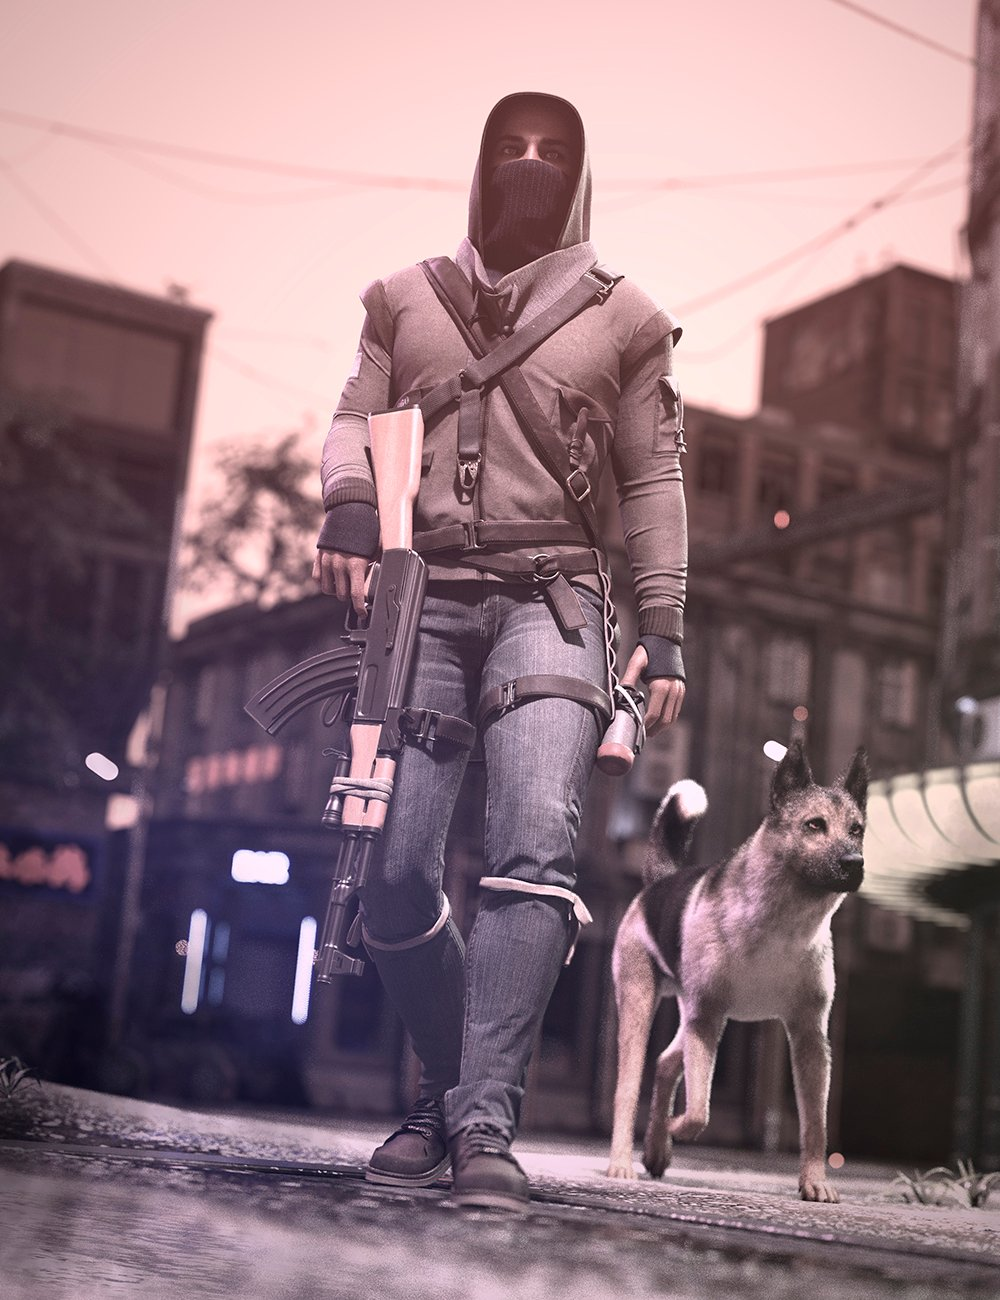 Dystopian HD Outfit for Genesis 8 and 8.1 Males by: Luthbellina, 3D Models by Daz 3D